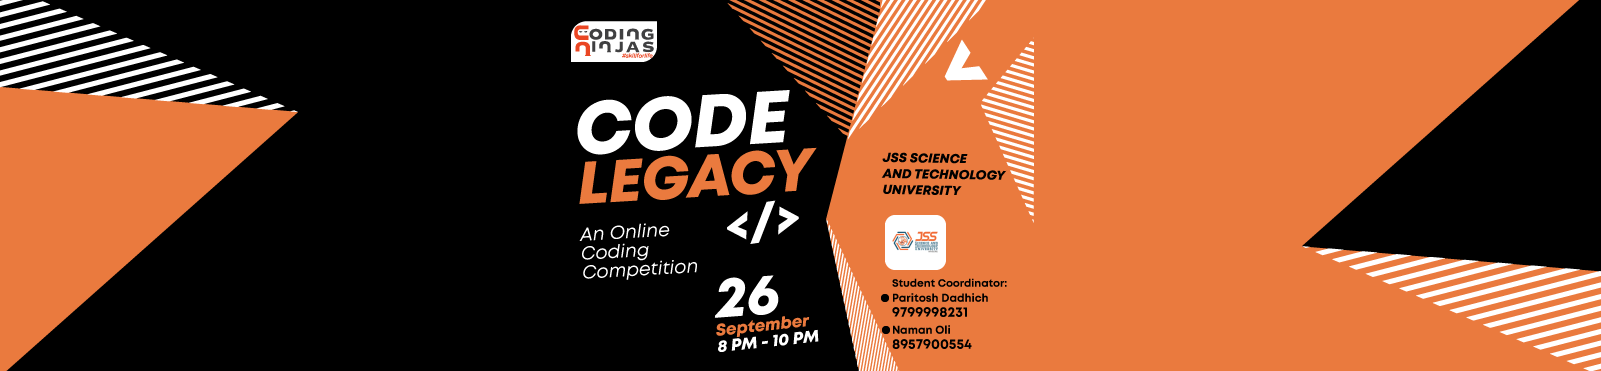 "Code Legacy at ""JSS SCIENCE AND TECHNOLOGY UNIVERSITY"""